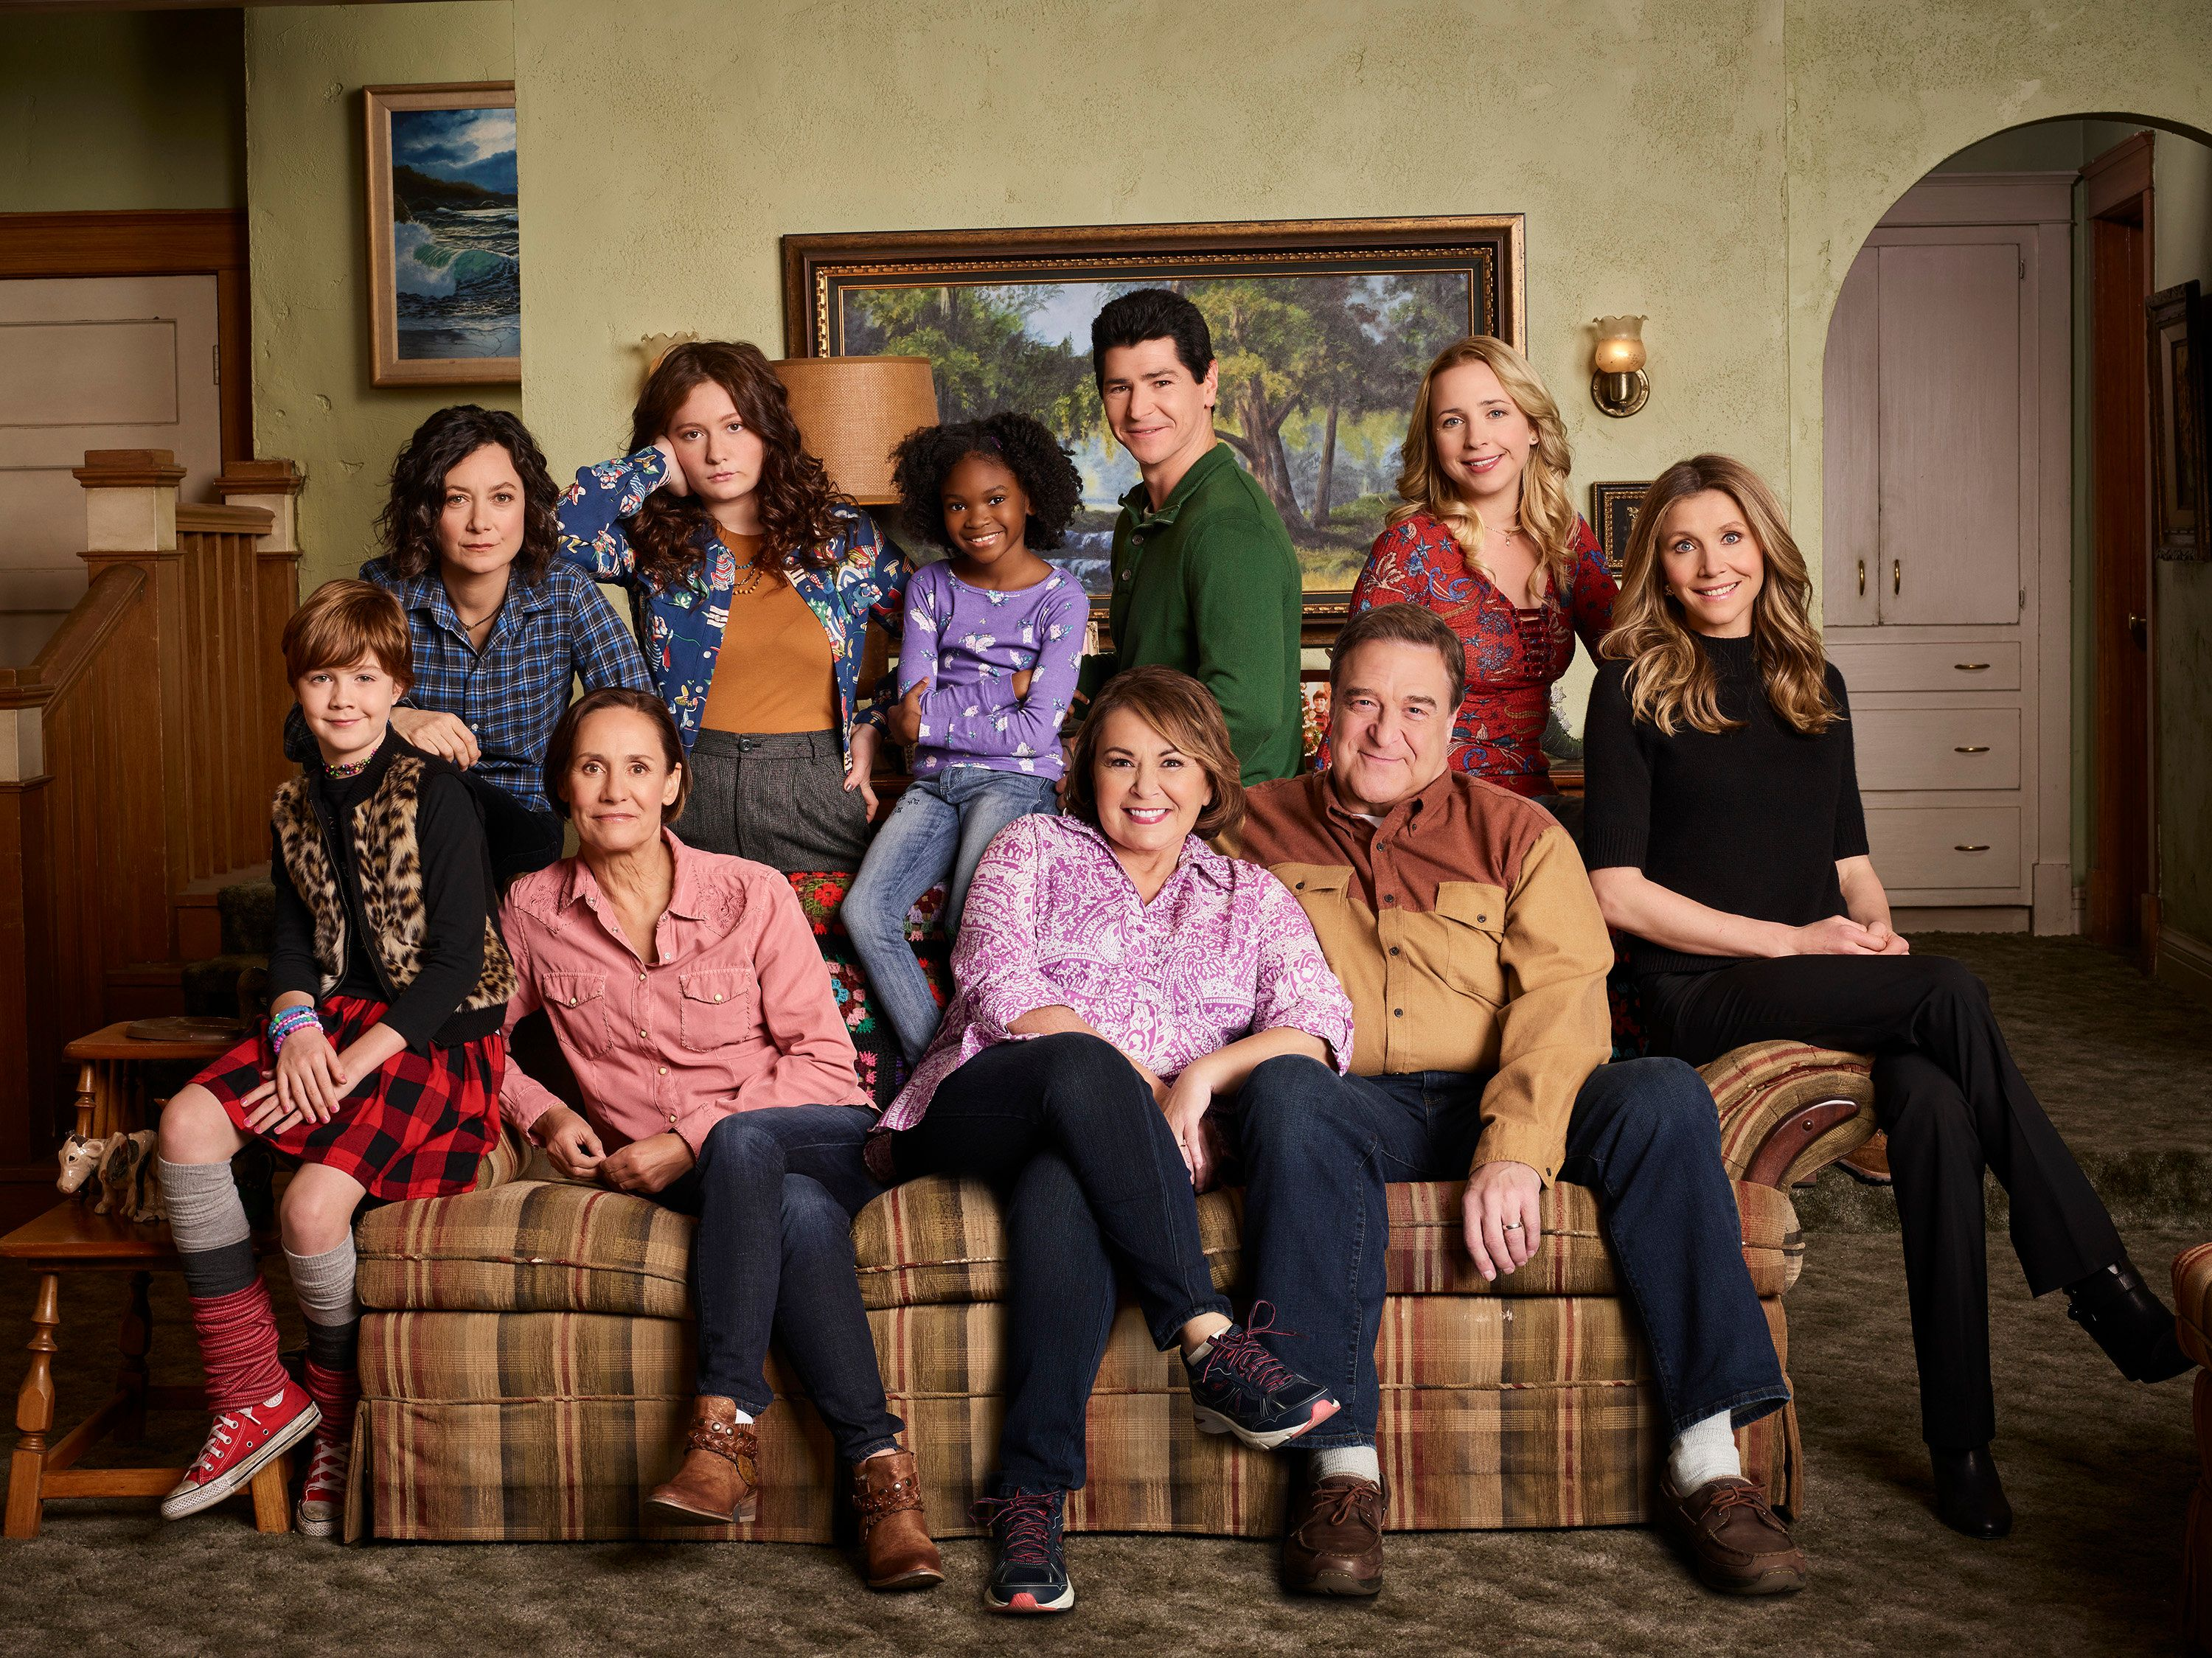 ROSEANNE - ABC's 'Roseanne' stars Ames McNamara as Mark, Sara Gilbert as Darlene Conner, Laurie Metcalf as Jackie Harris, Emma Kenney as Harris Conner, Jayden Rey as Mary, Roseanne Barr as Roseanne Conner, Michael Fishman as D.J. Conner, John Goodman as Dan Conner, Lecy Goranson as Becky Conner, and Sarah Chalke as Andrea. (Robert Trachtenberg/ABC via Getty Images)